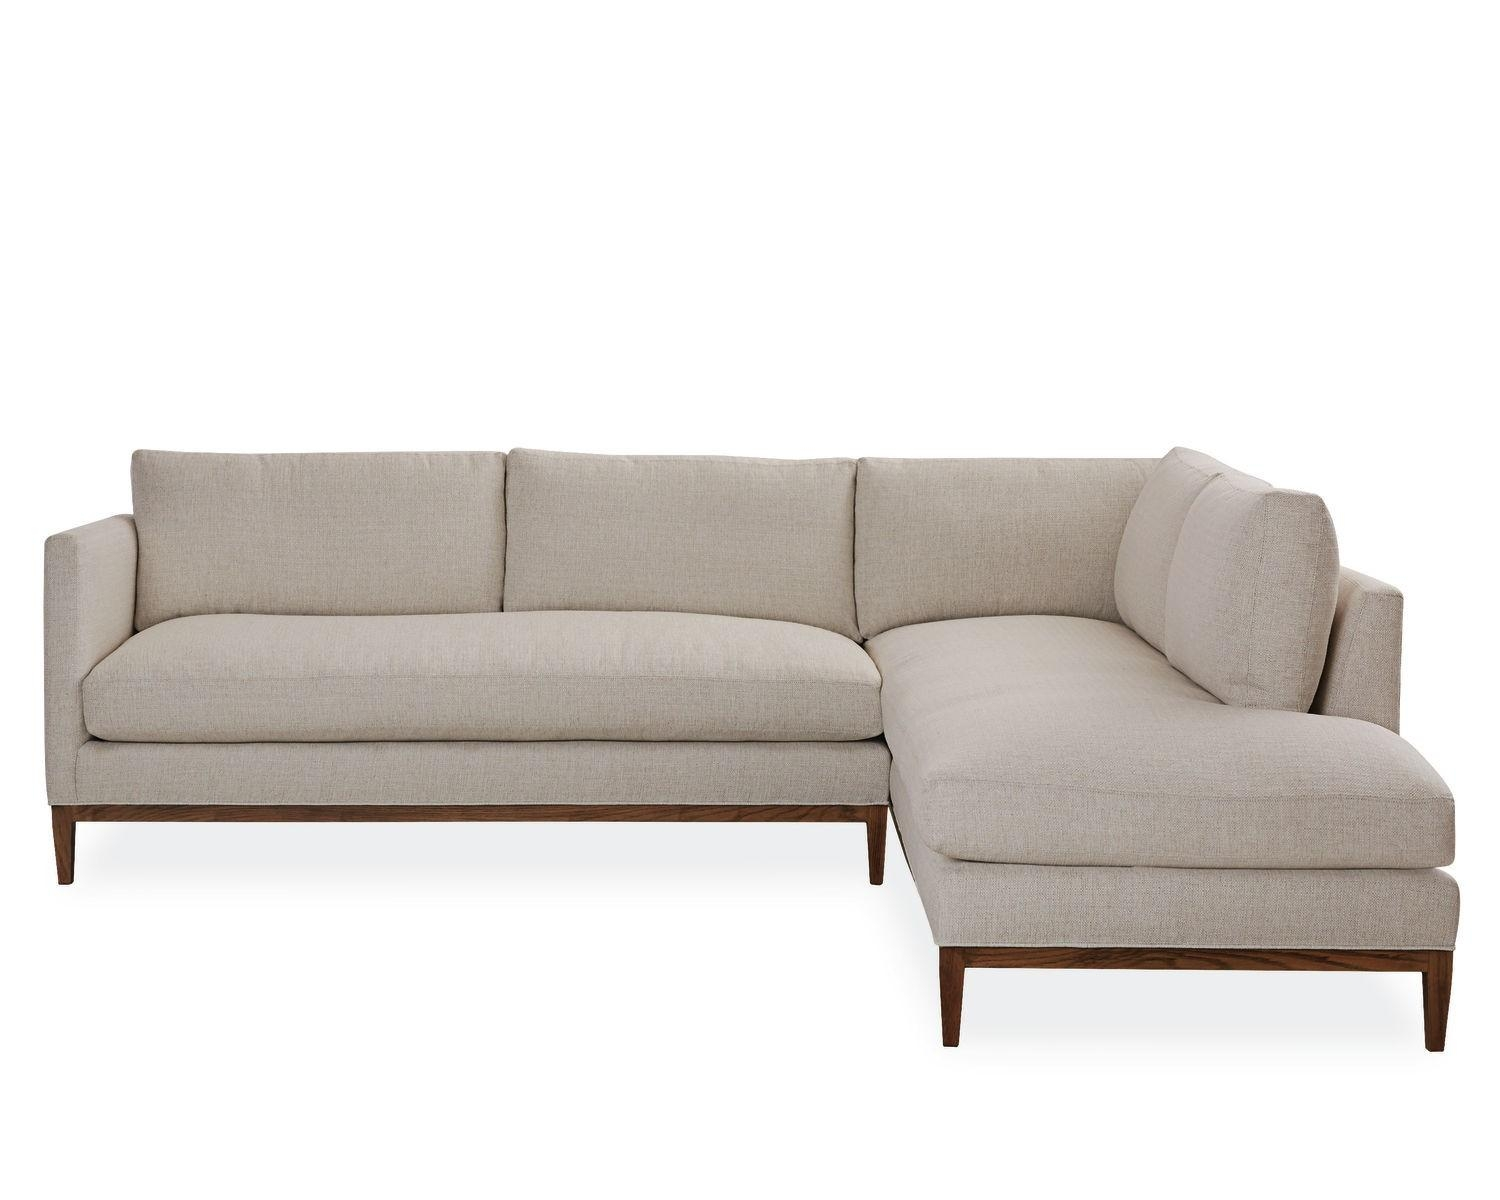 American Furniture | Palm Springs Chaise Sectional | Lee Industries For Lee Industries Sectional (View 9 of 20)